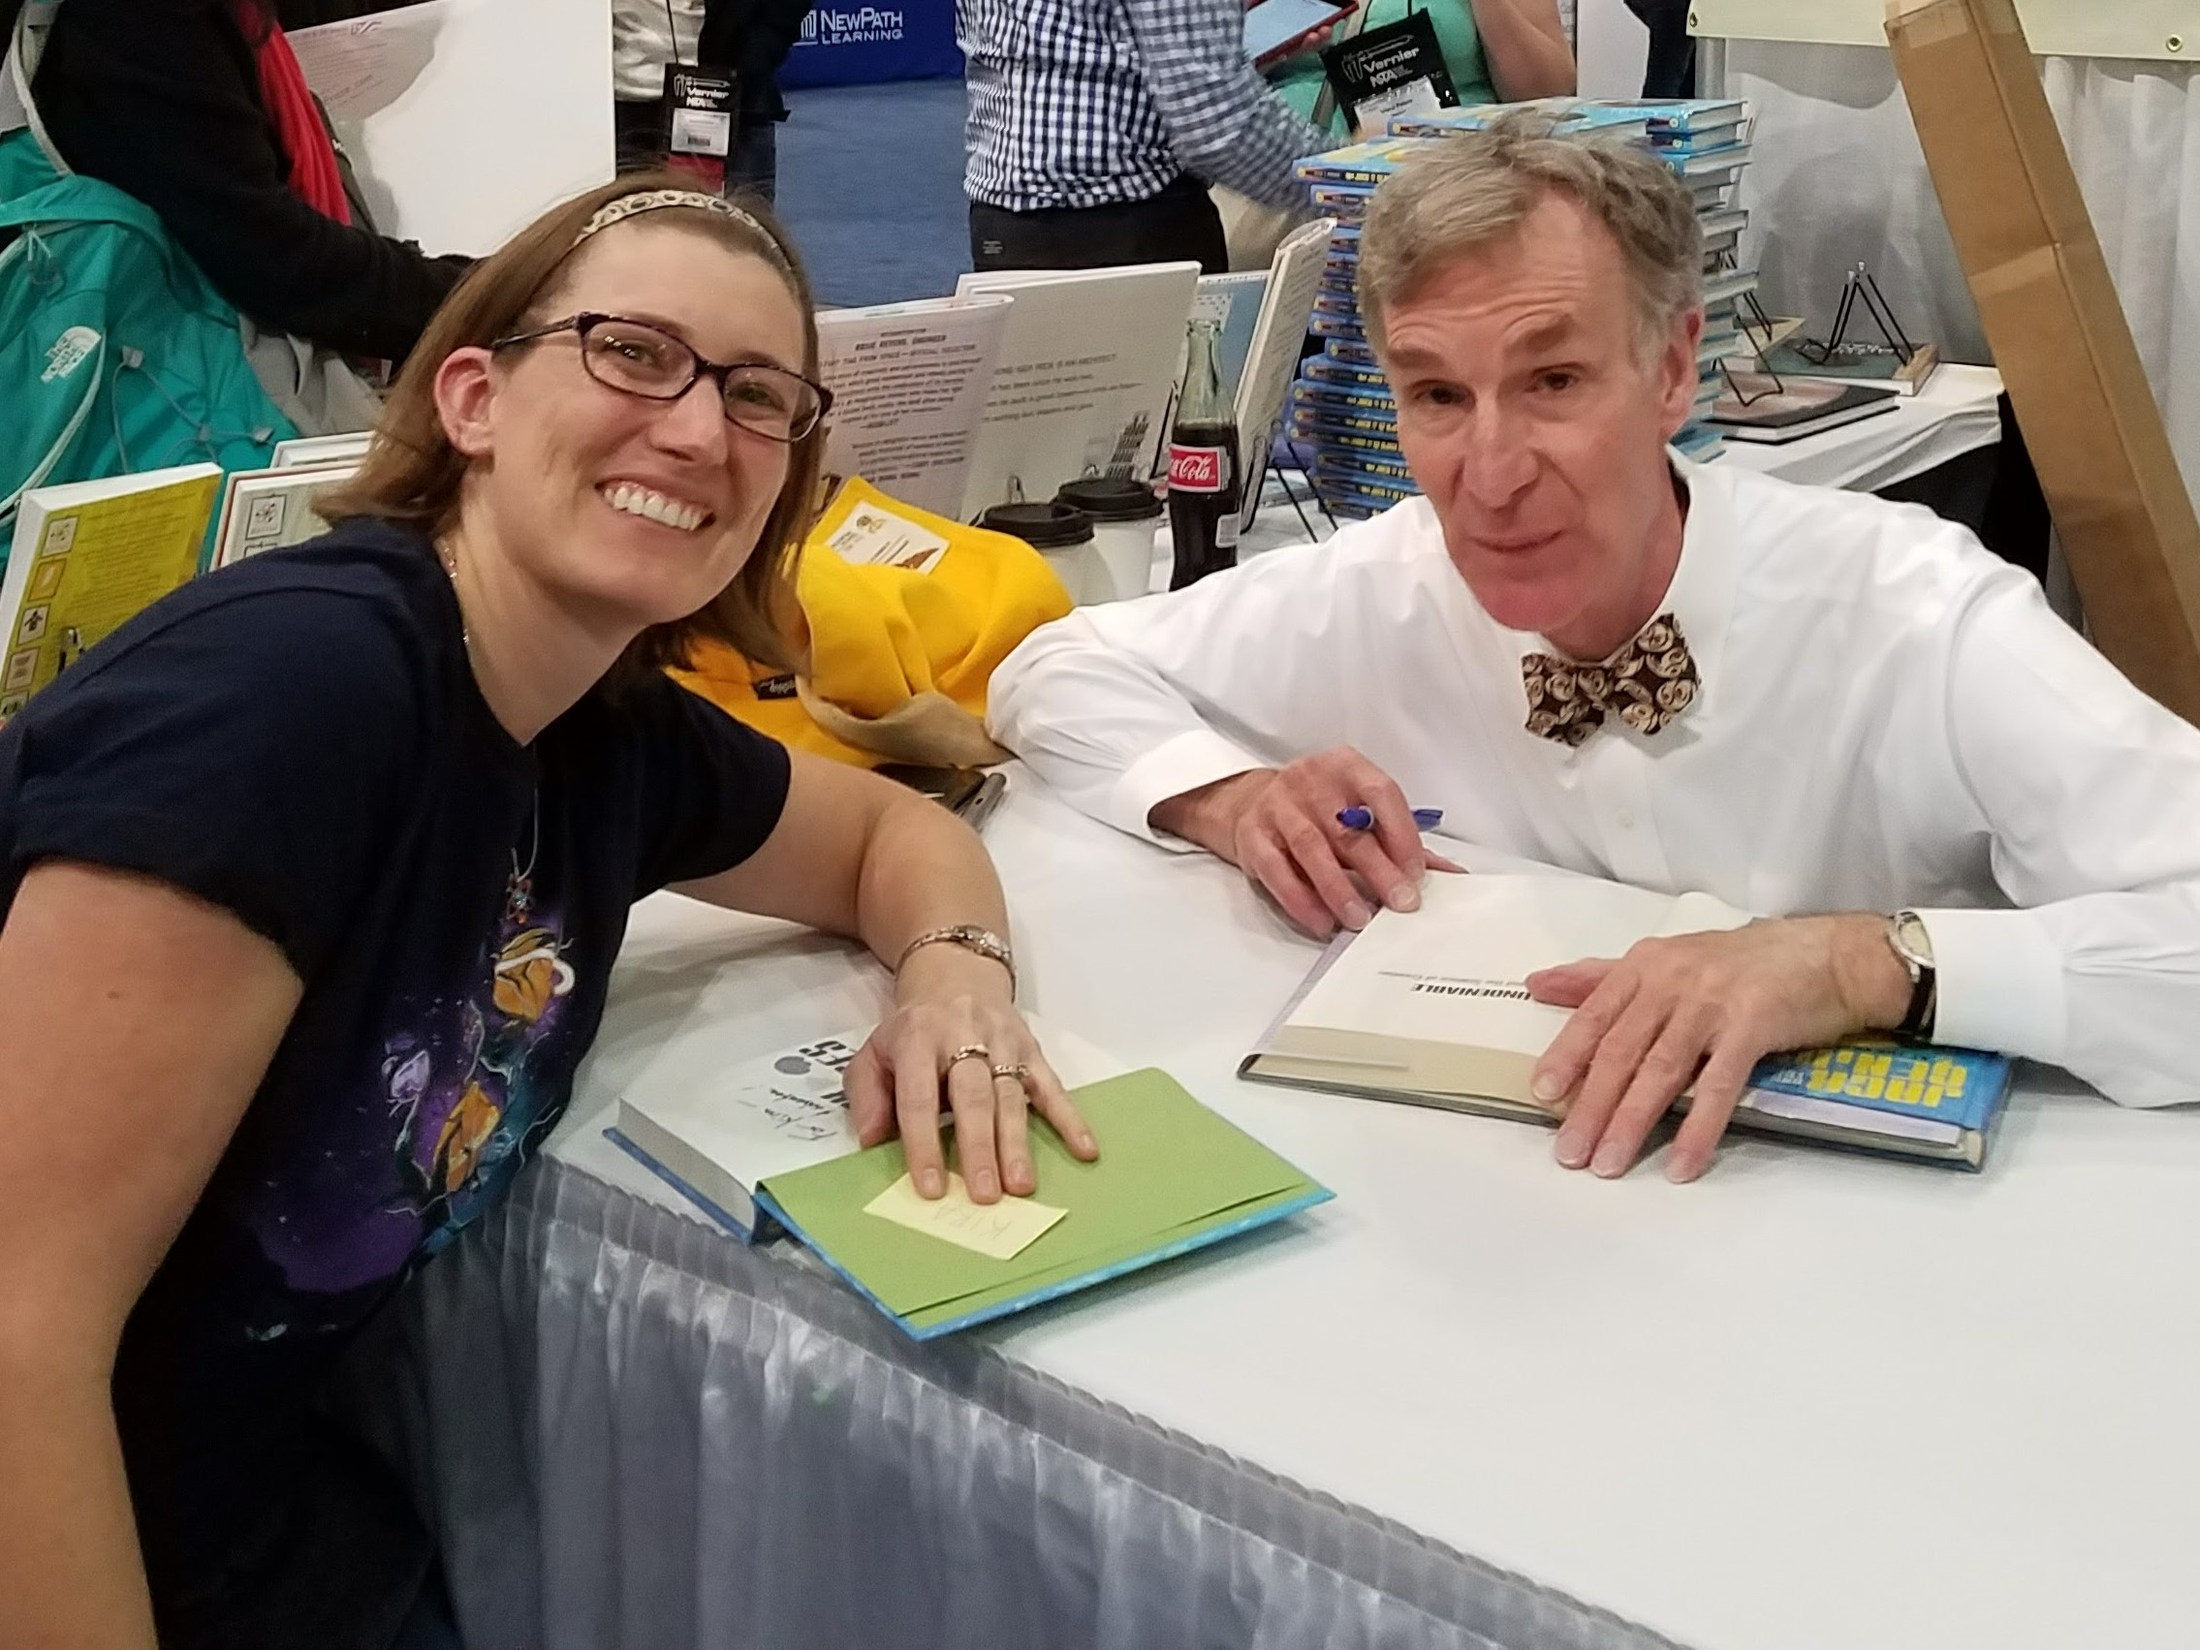 Mrs. Dutton with Bill Nye at the 2017 NSTA Conference